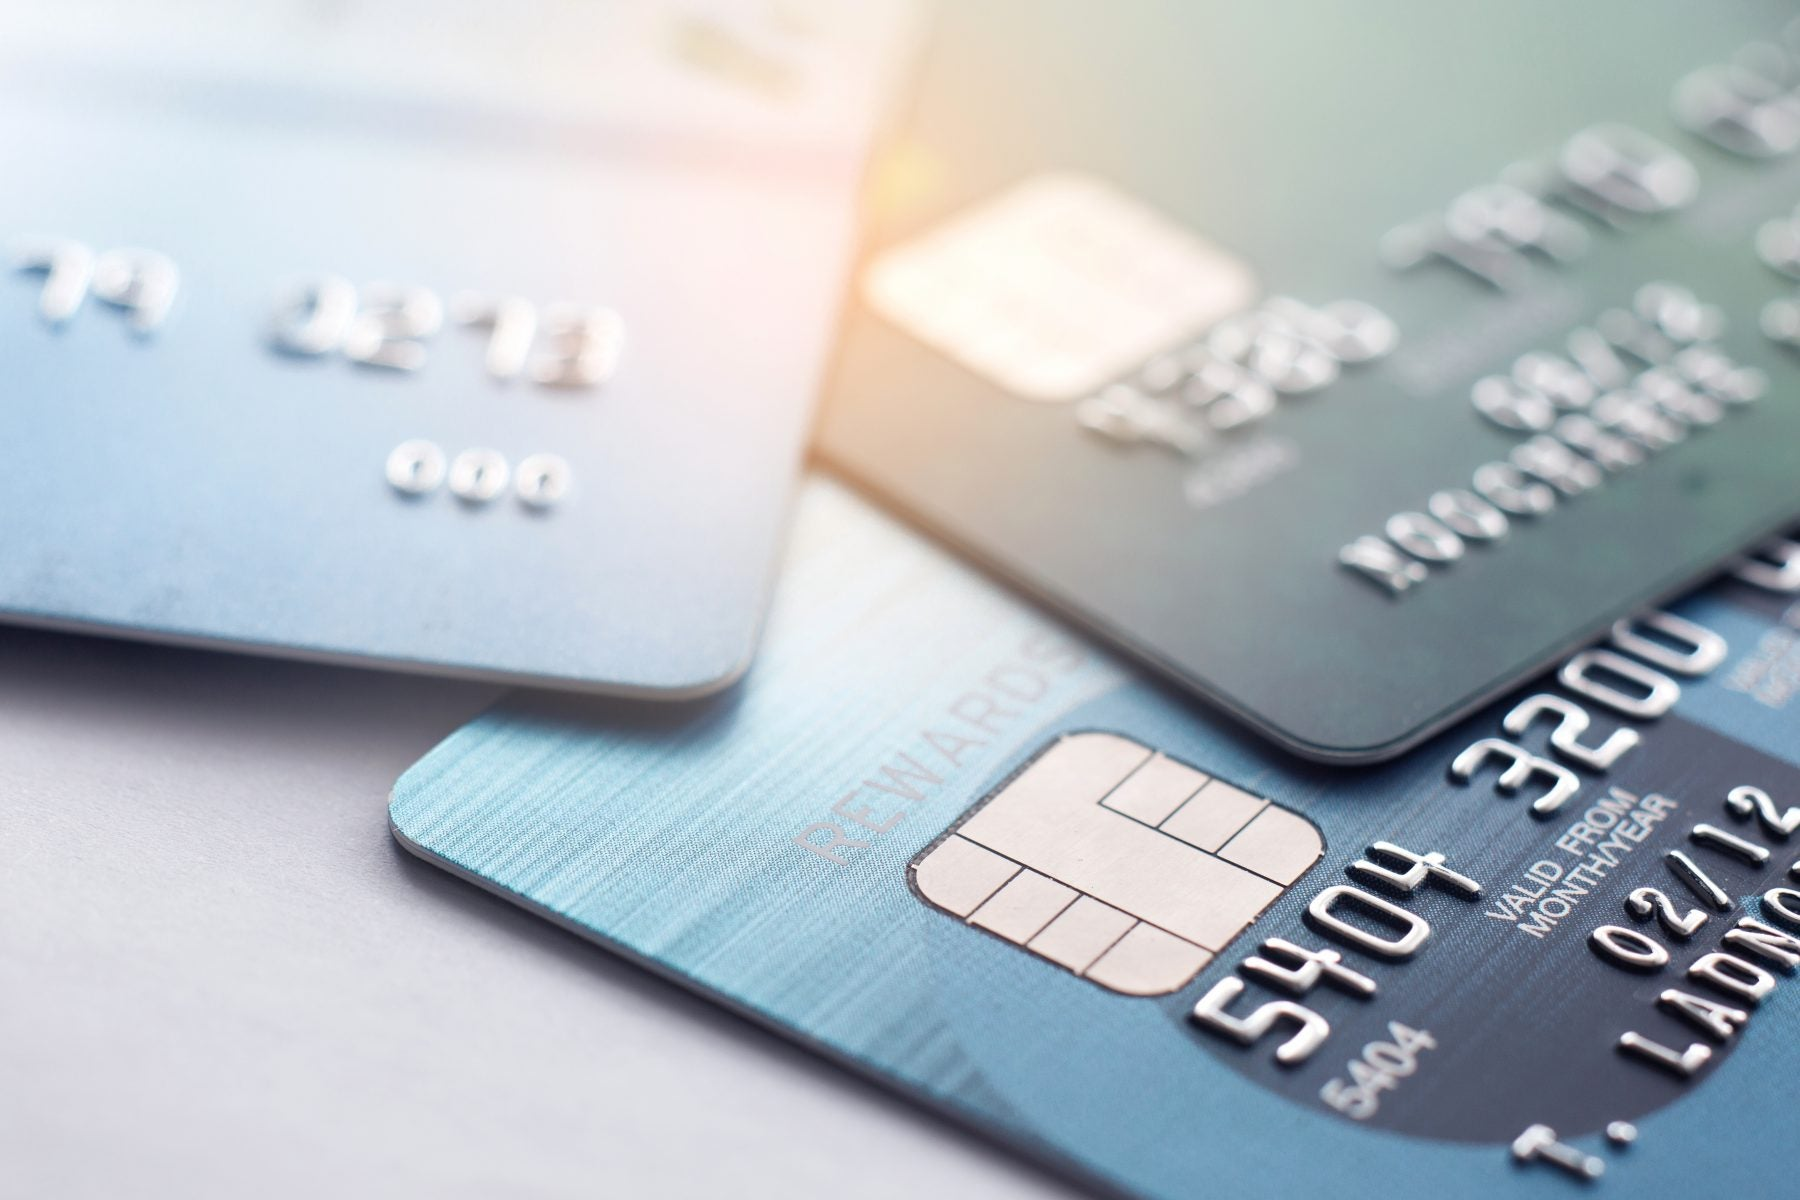 Test Your Knowledge: Do You Know the Top Credit Card For Every Spending Category?